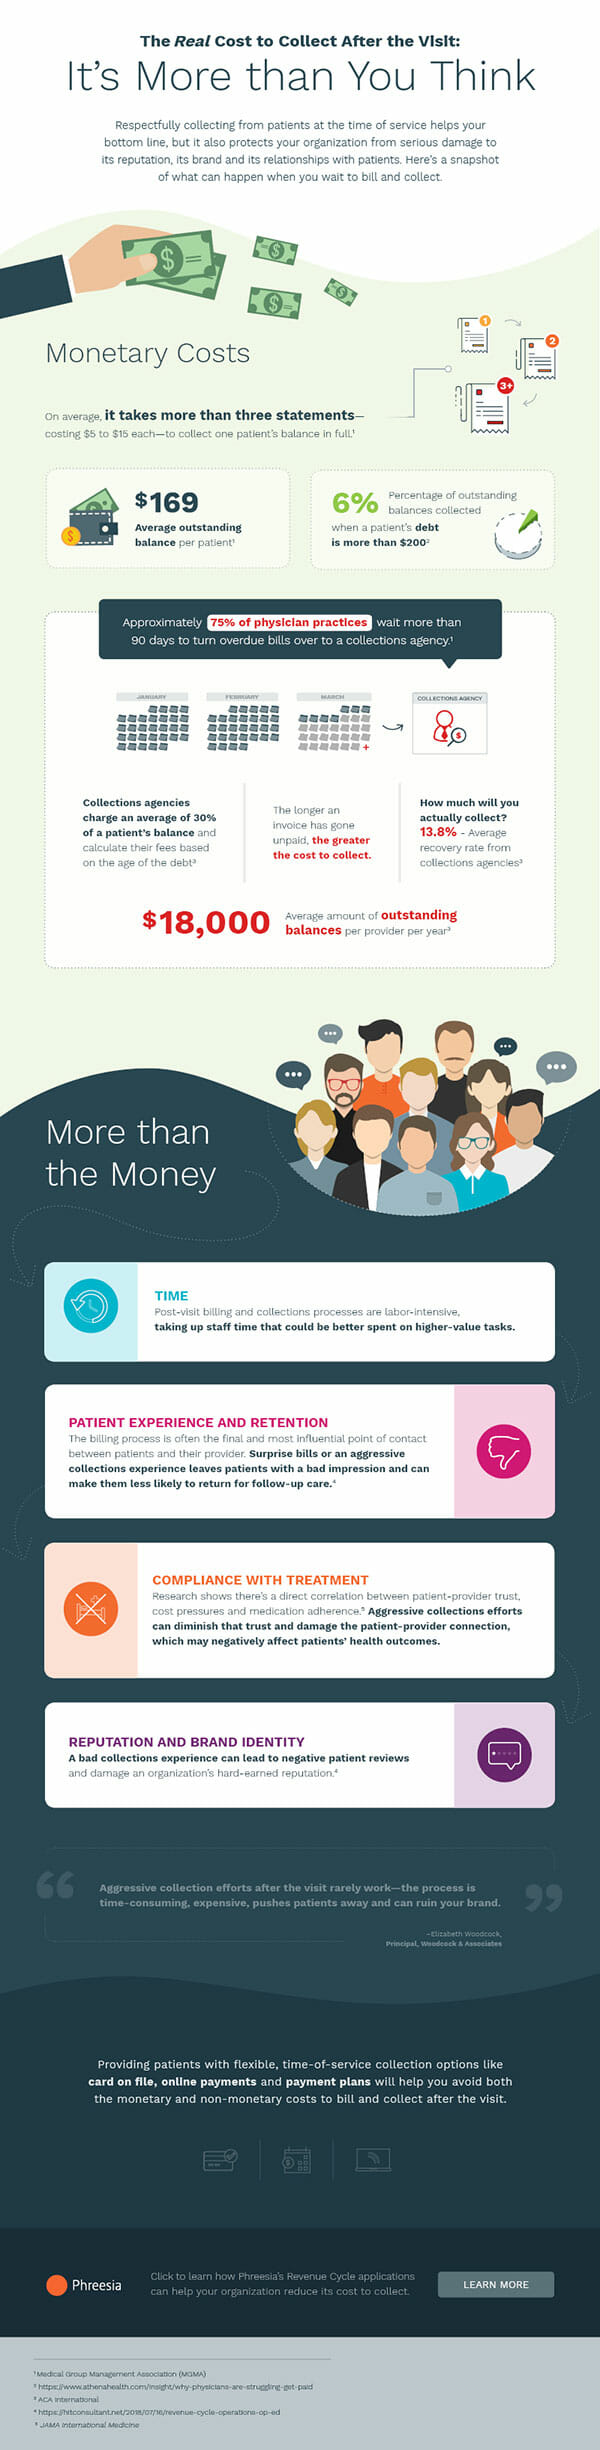 An infographic showing the costs to collect after the patient visit.